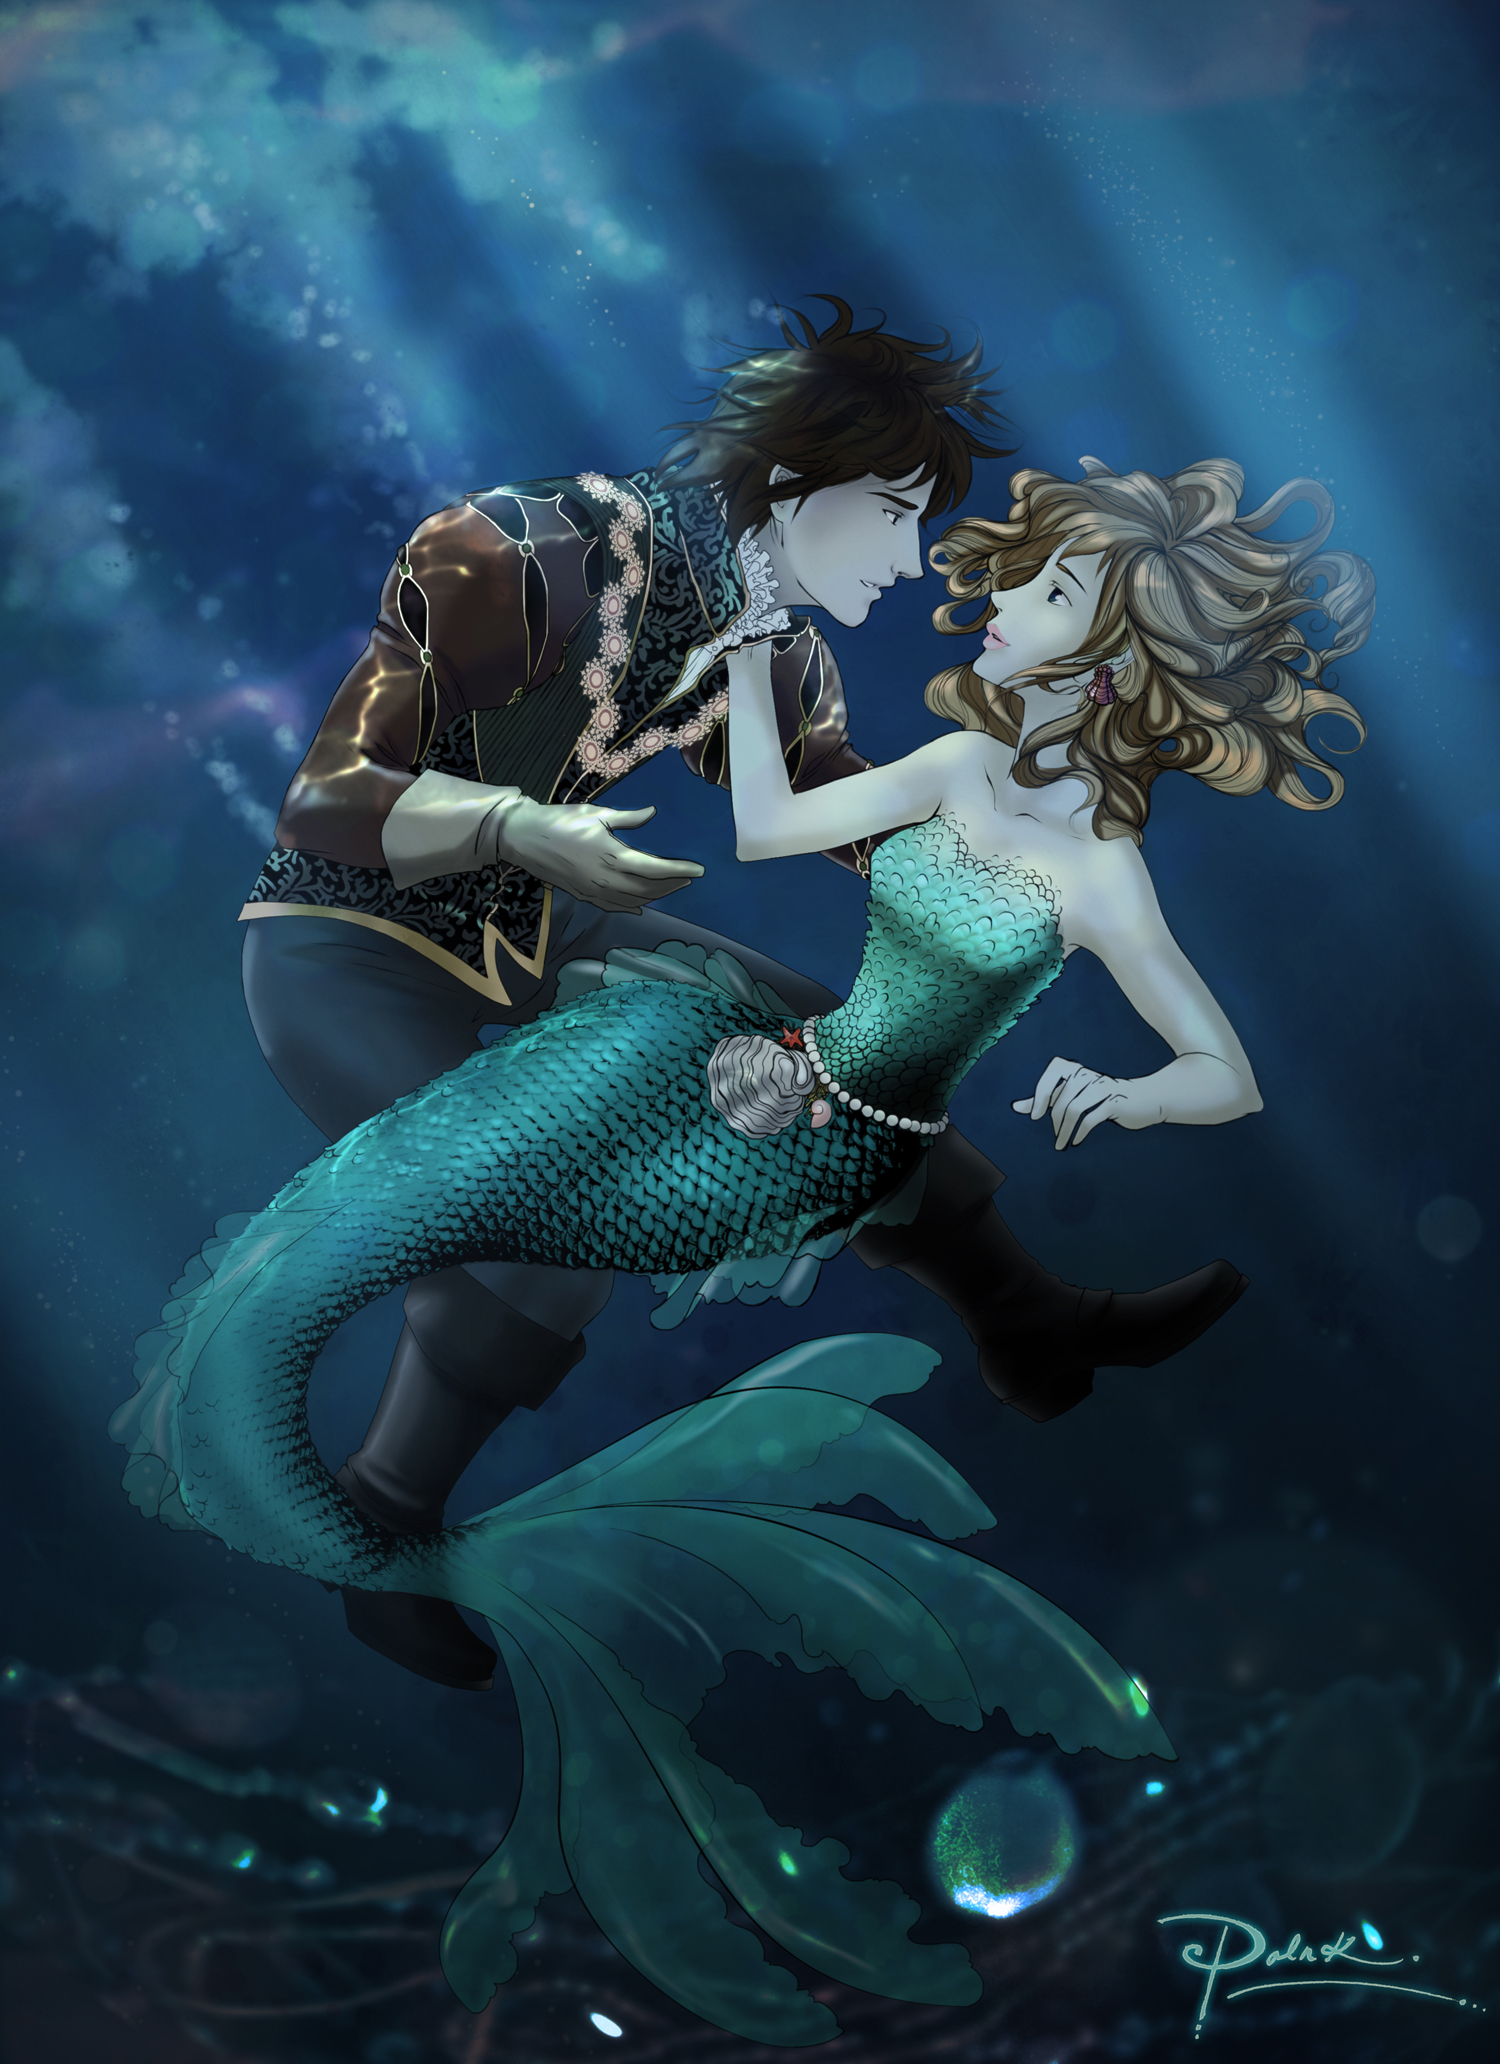 Adventures of d Little Mermaid by palnk on DeviantArt